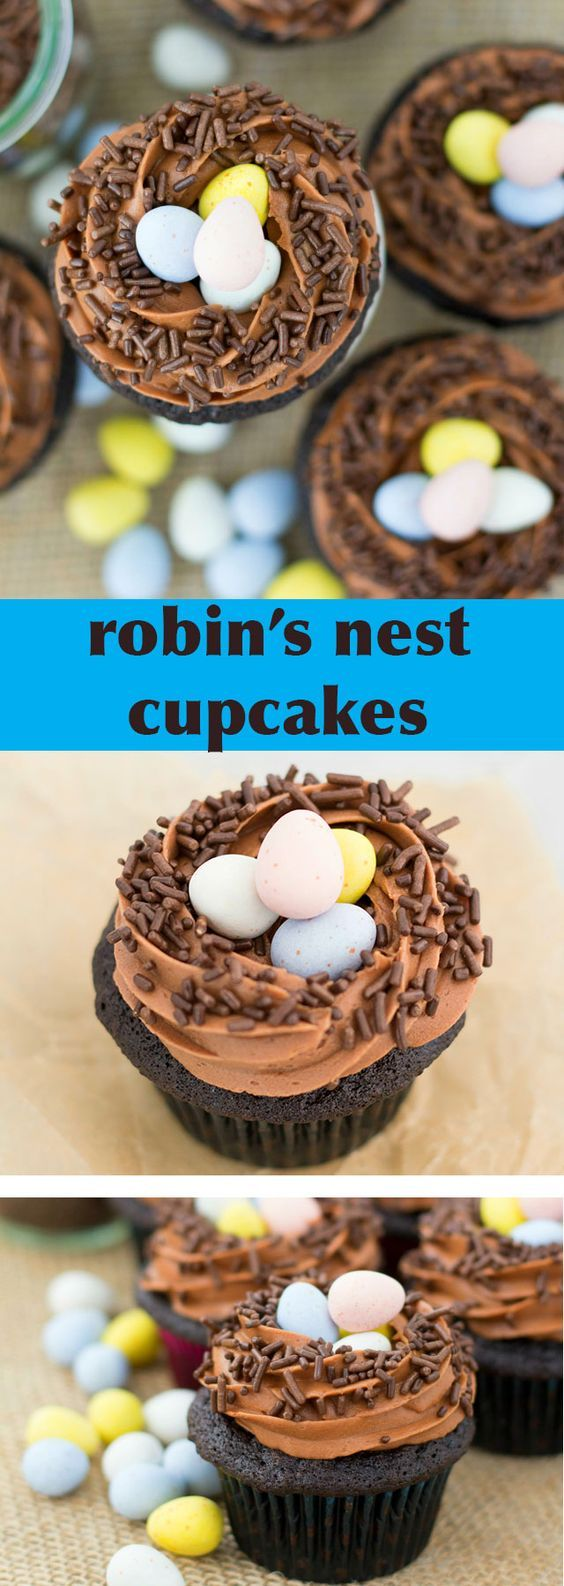 These Robins' Nest Cupcakes are made with moist, rich chocolate cupcakes, topped with a fluffy chocolate frosting, brown jimmies and chocolate robins' eggs.